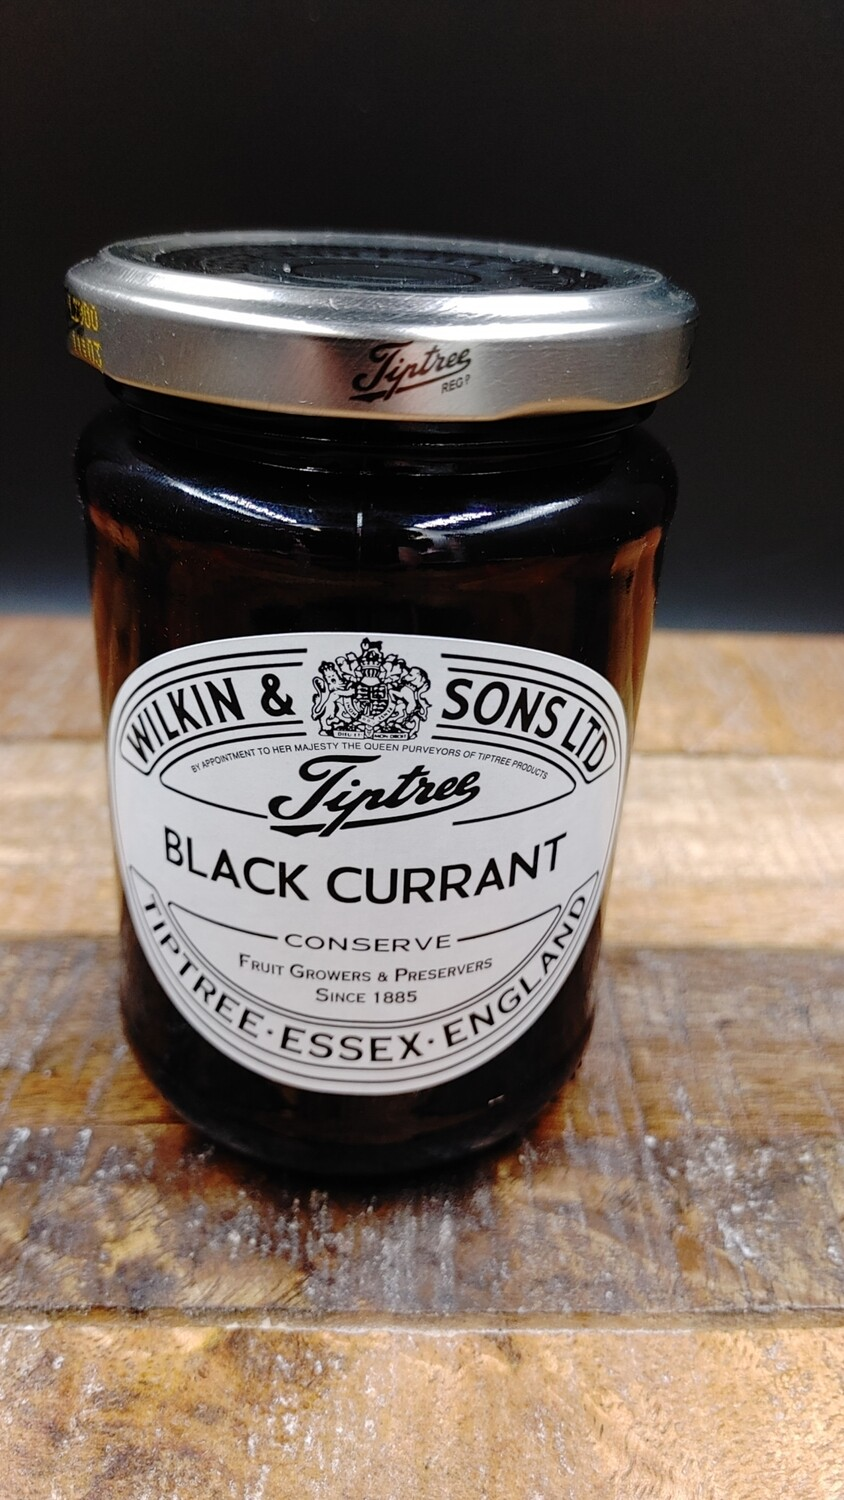 Wilkin & Sons Blackcurrant Conserve 340g